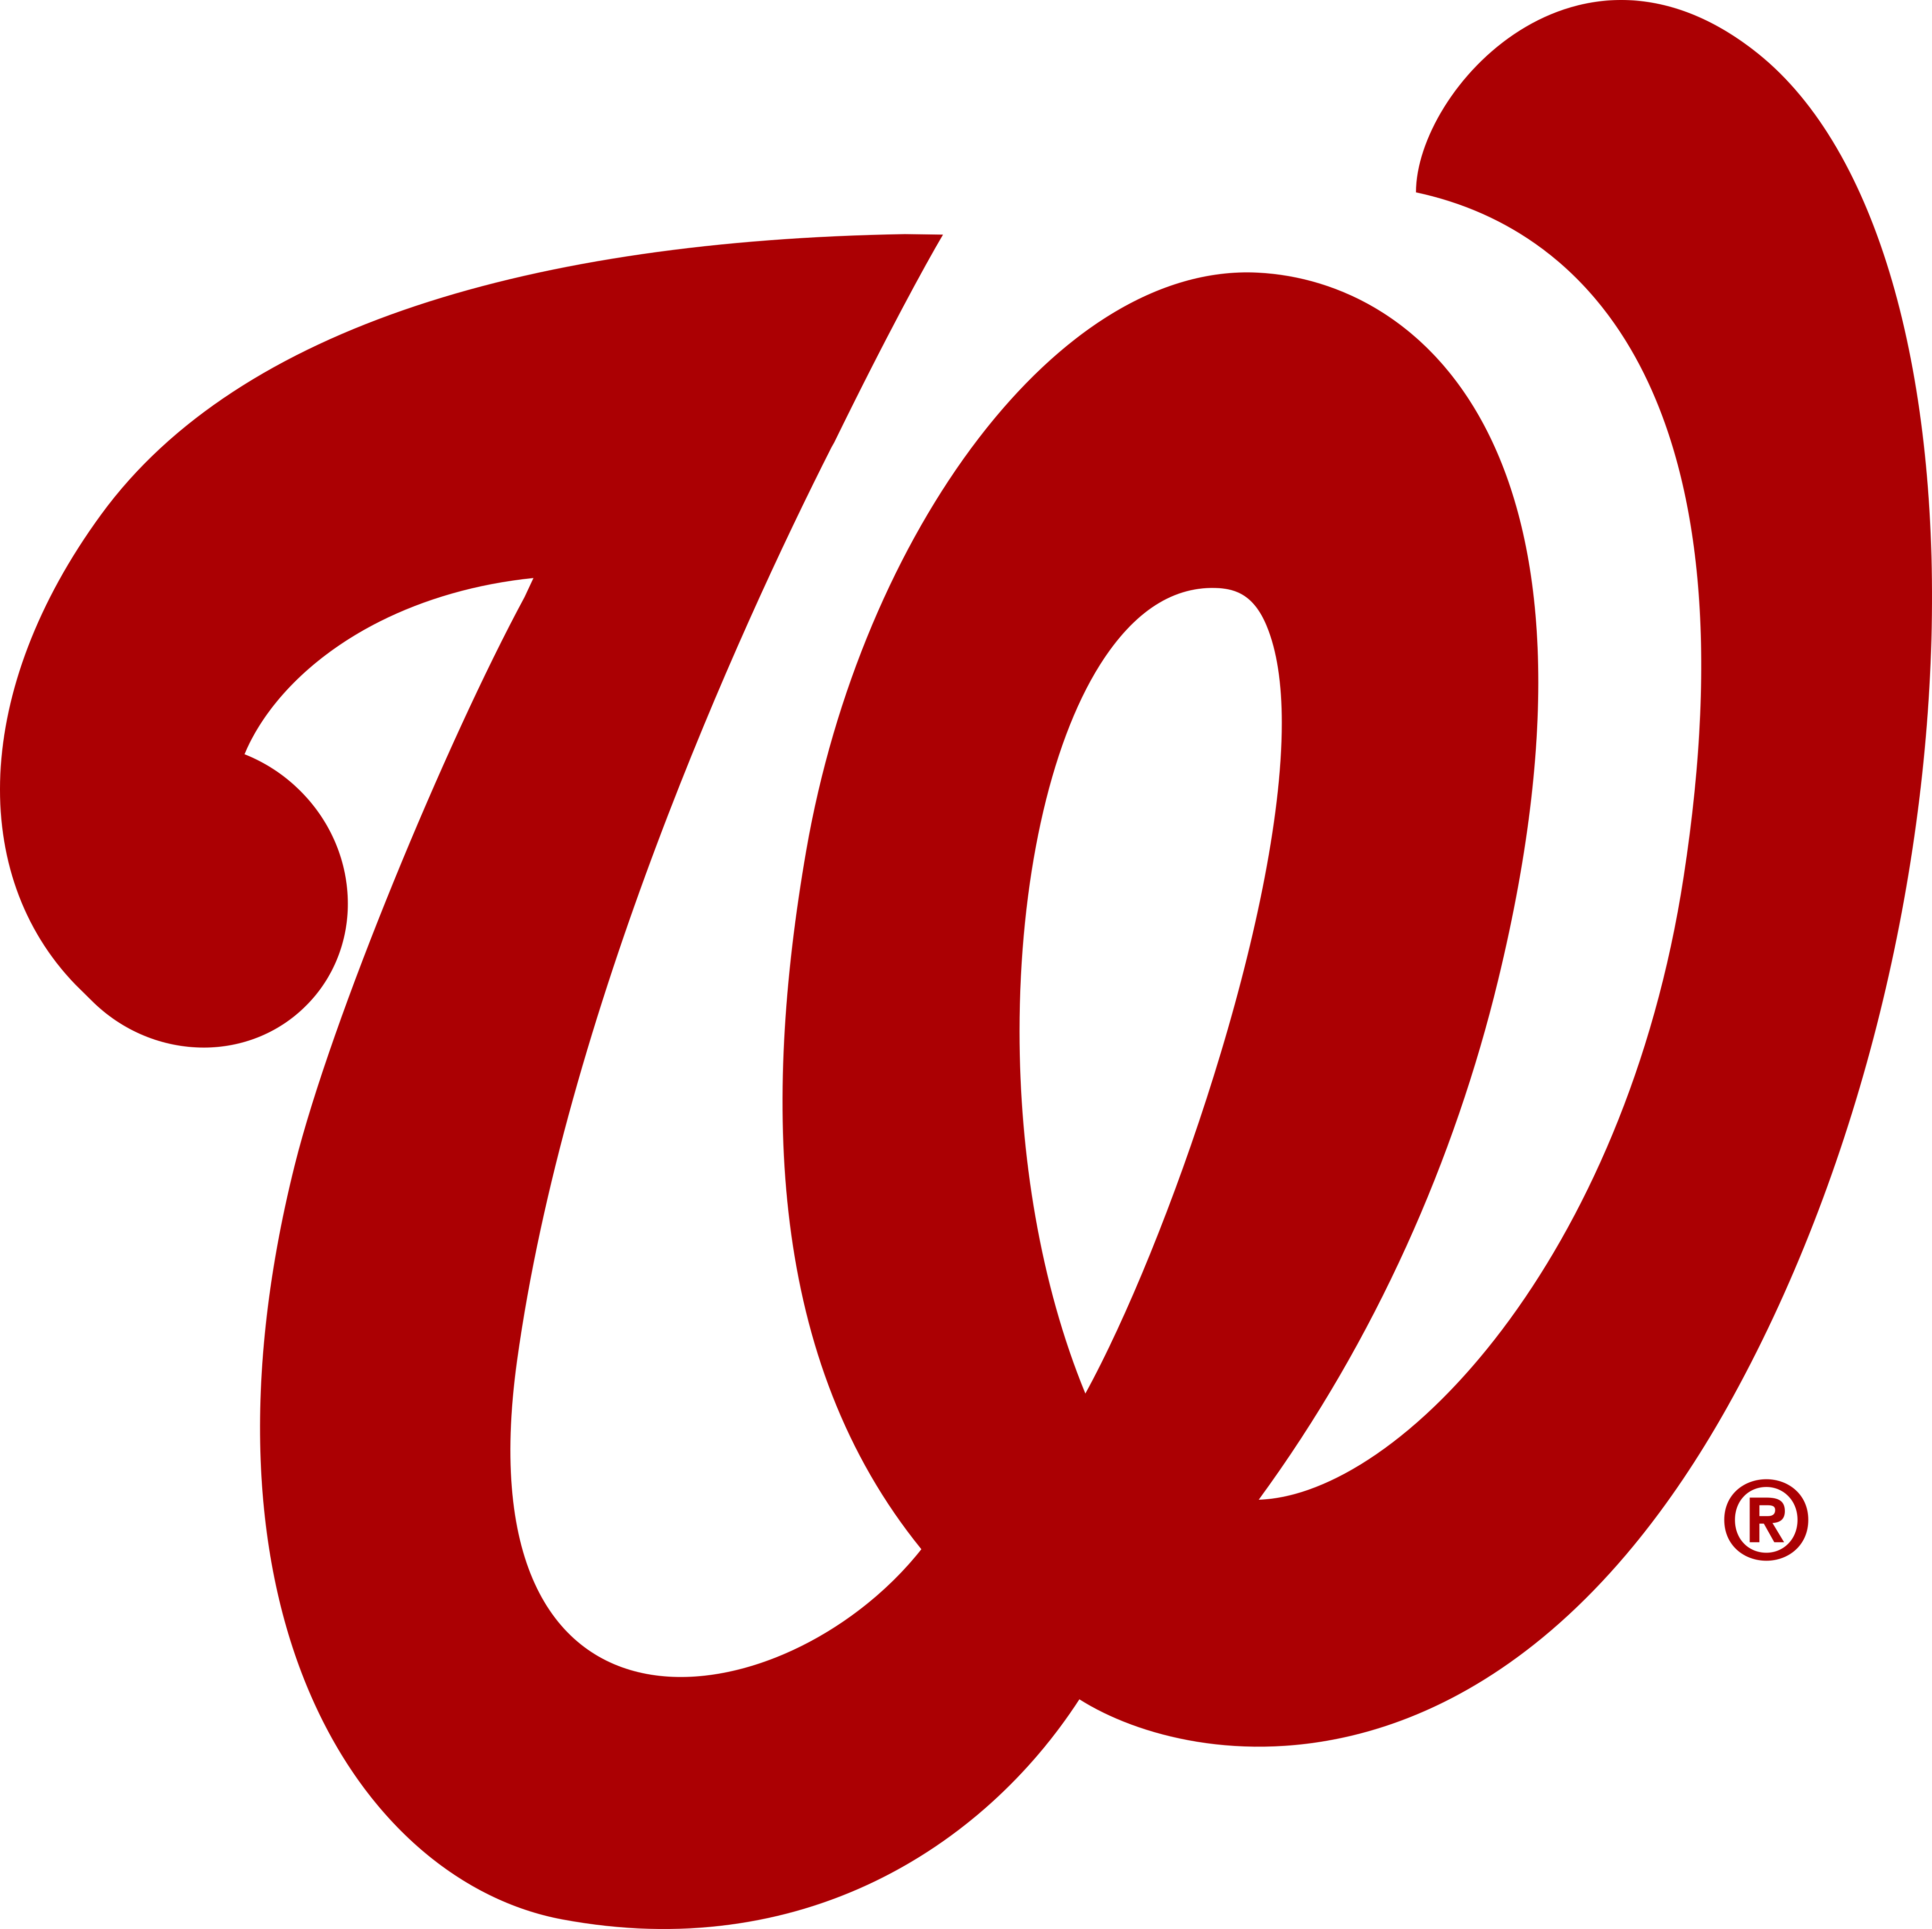 washington nationals logo - Washington Nationals Logo